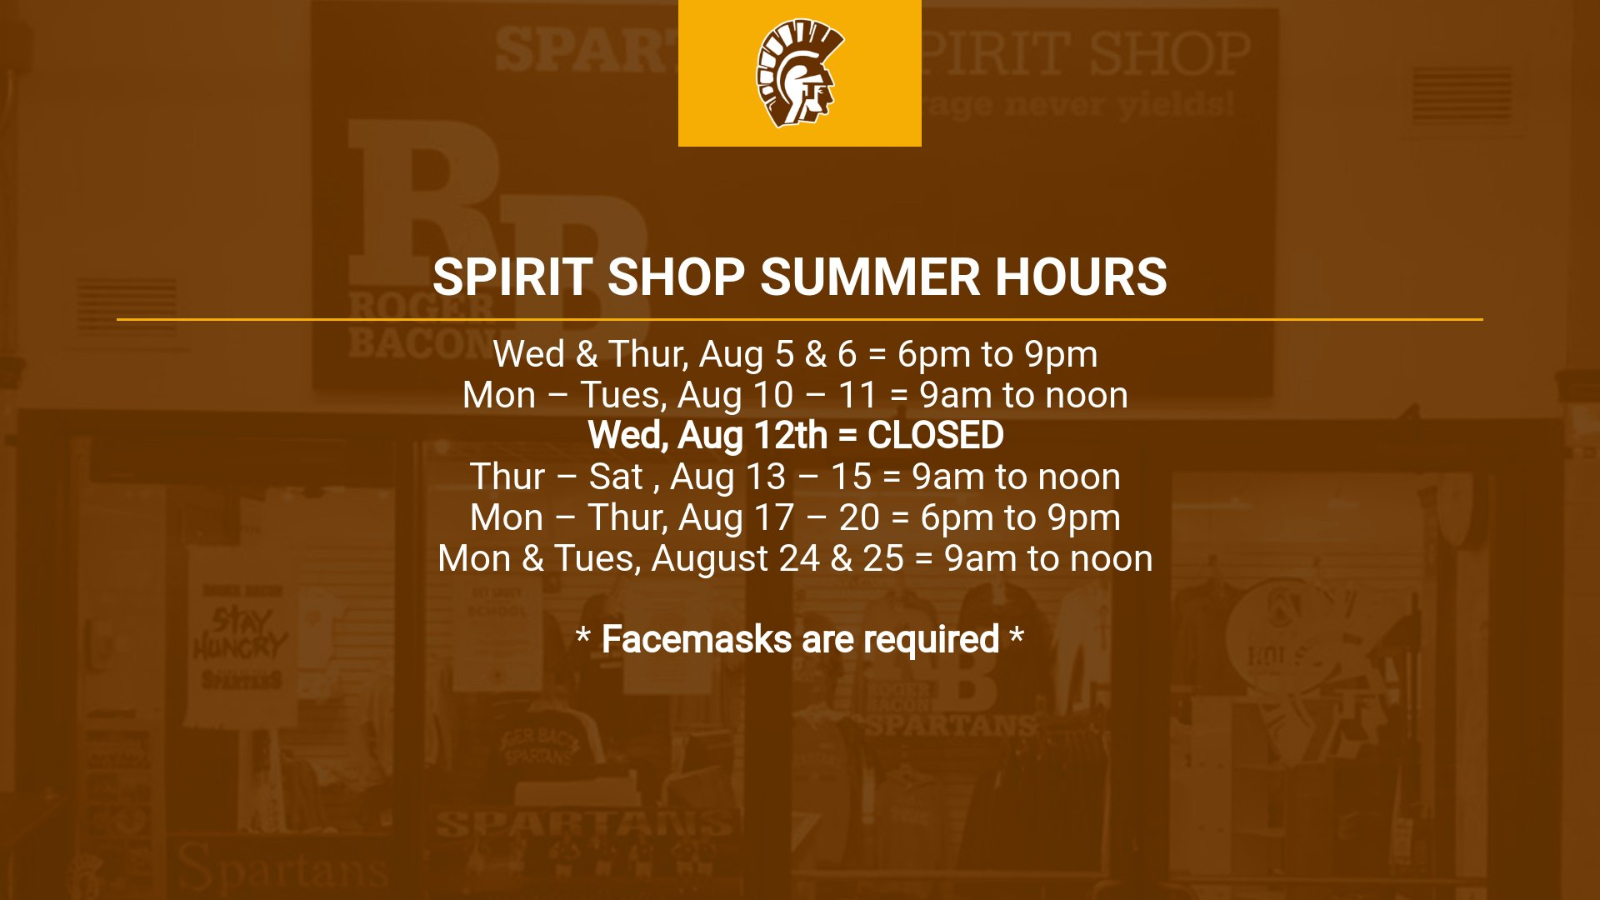 Spirit Shop Summer Hours